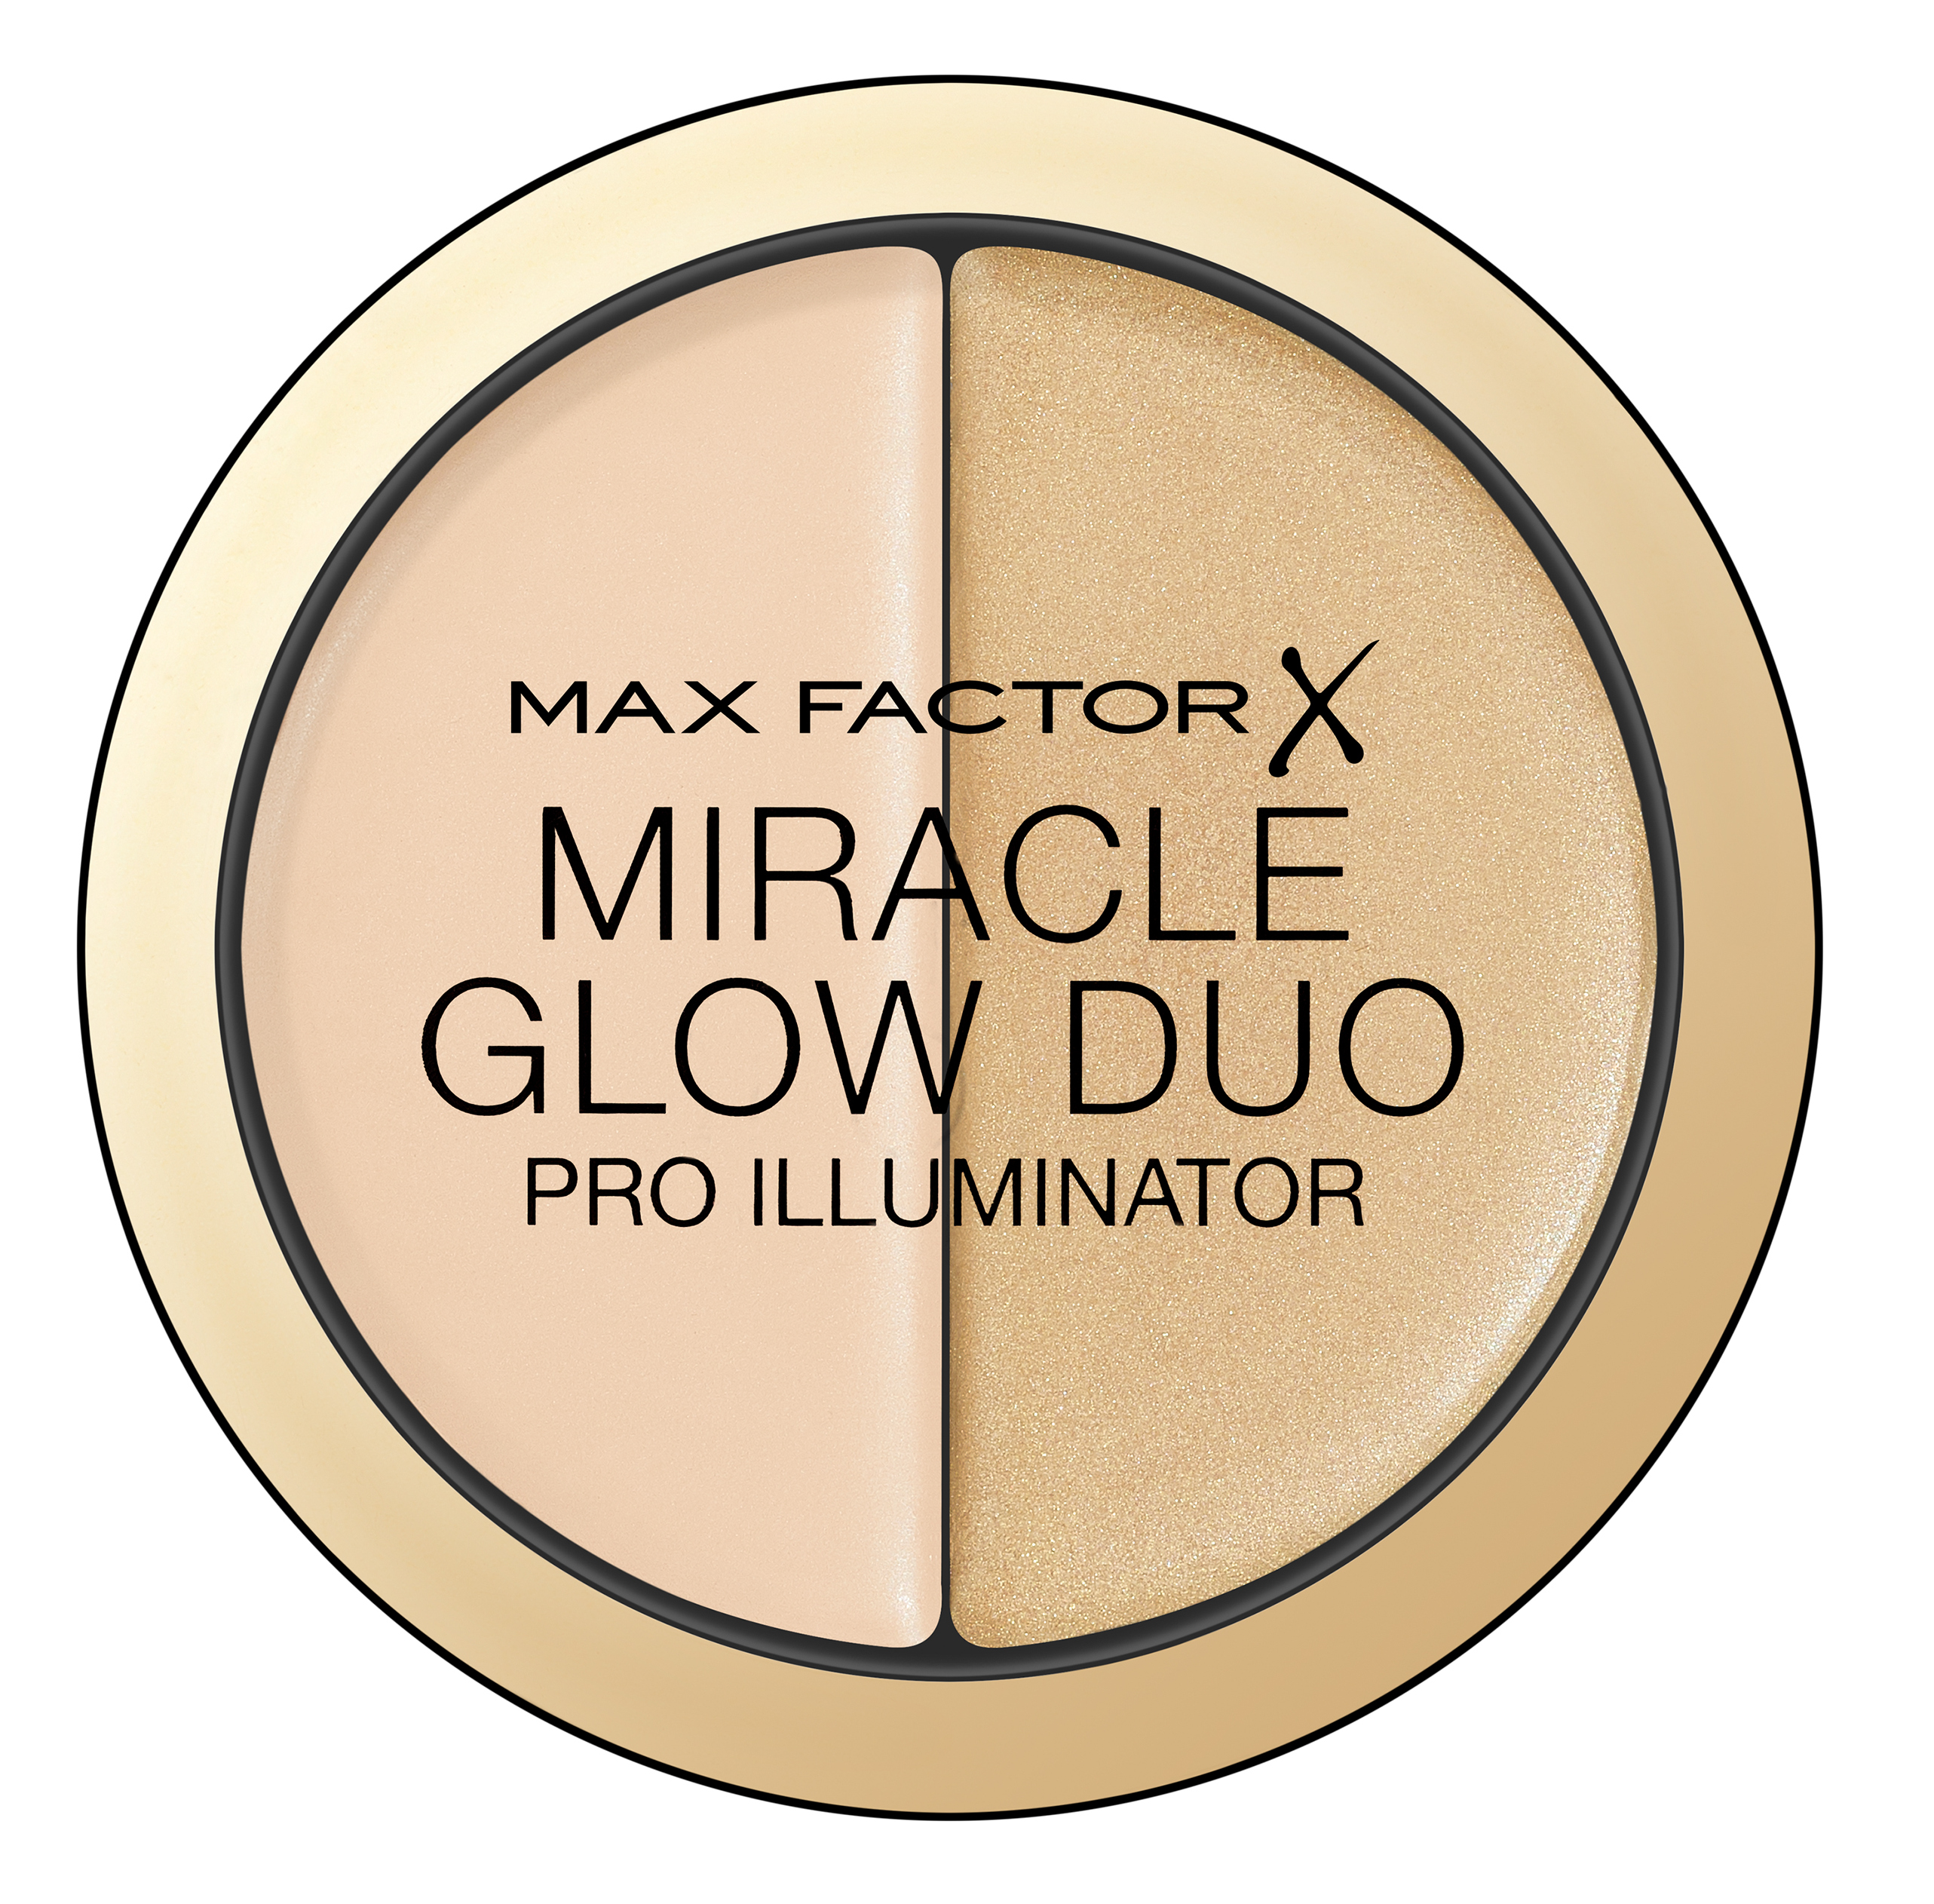 MAX FACTOR Хайлайтер 10 / Miracle Glow Duo light - Особые средства